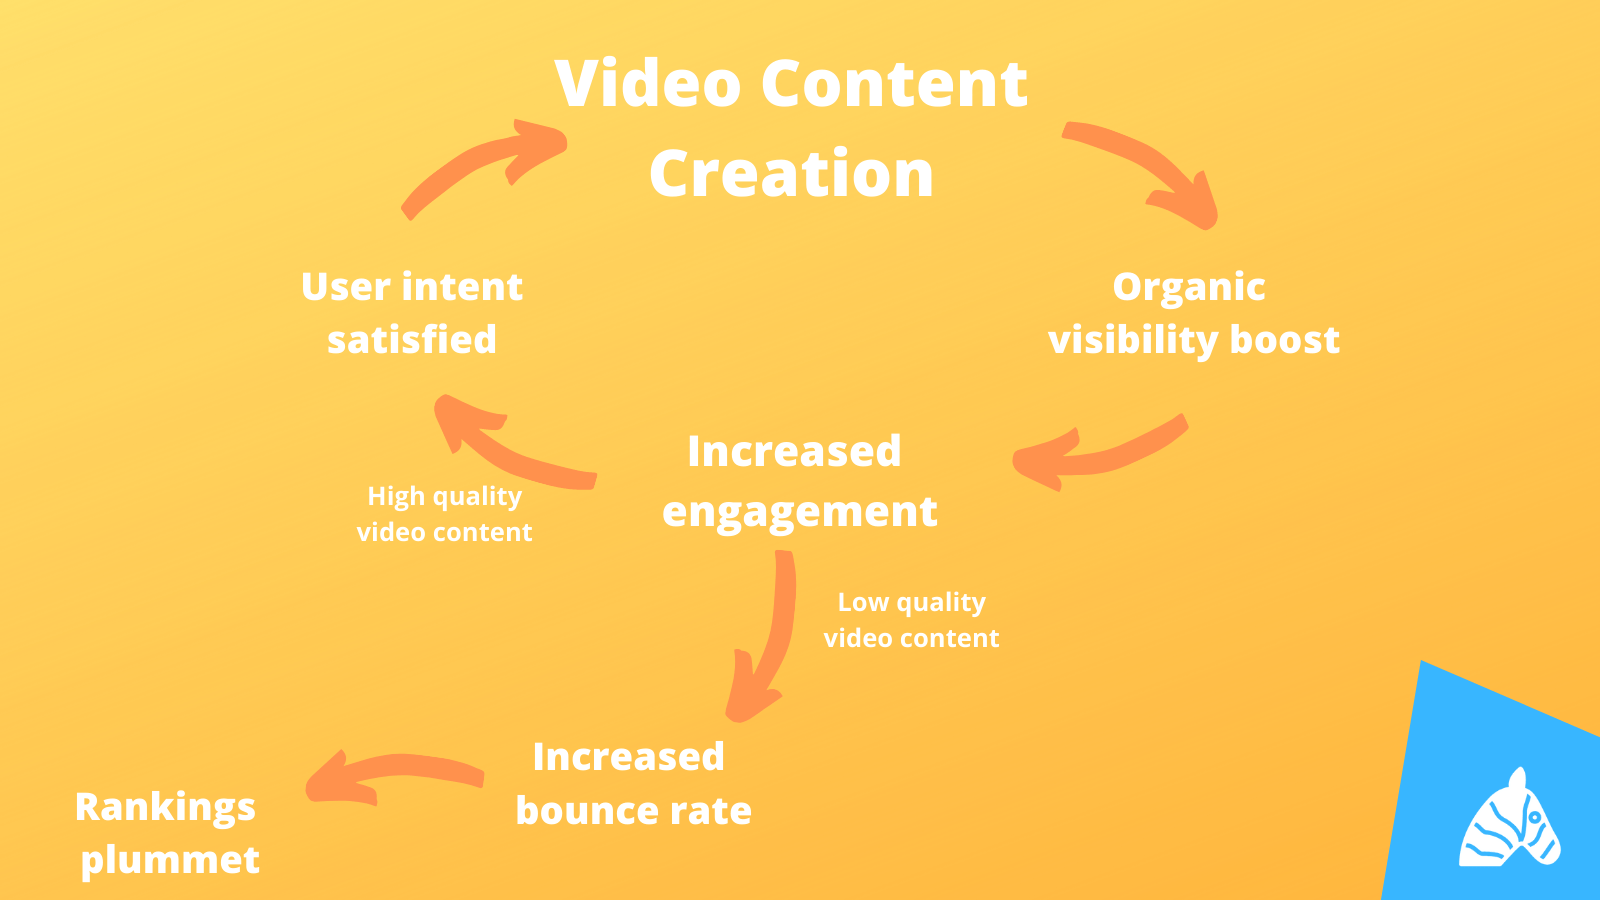 video content creation process explained